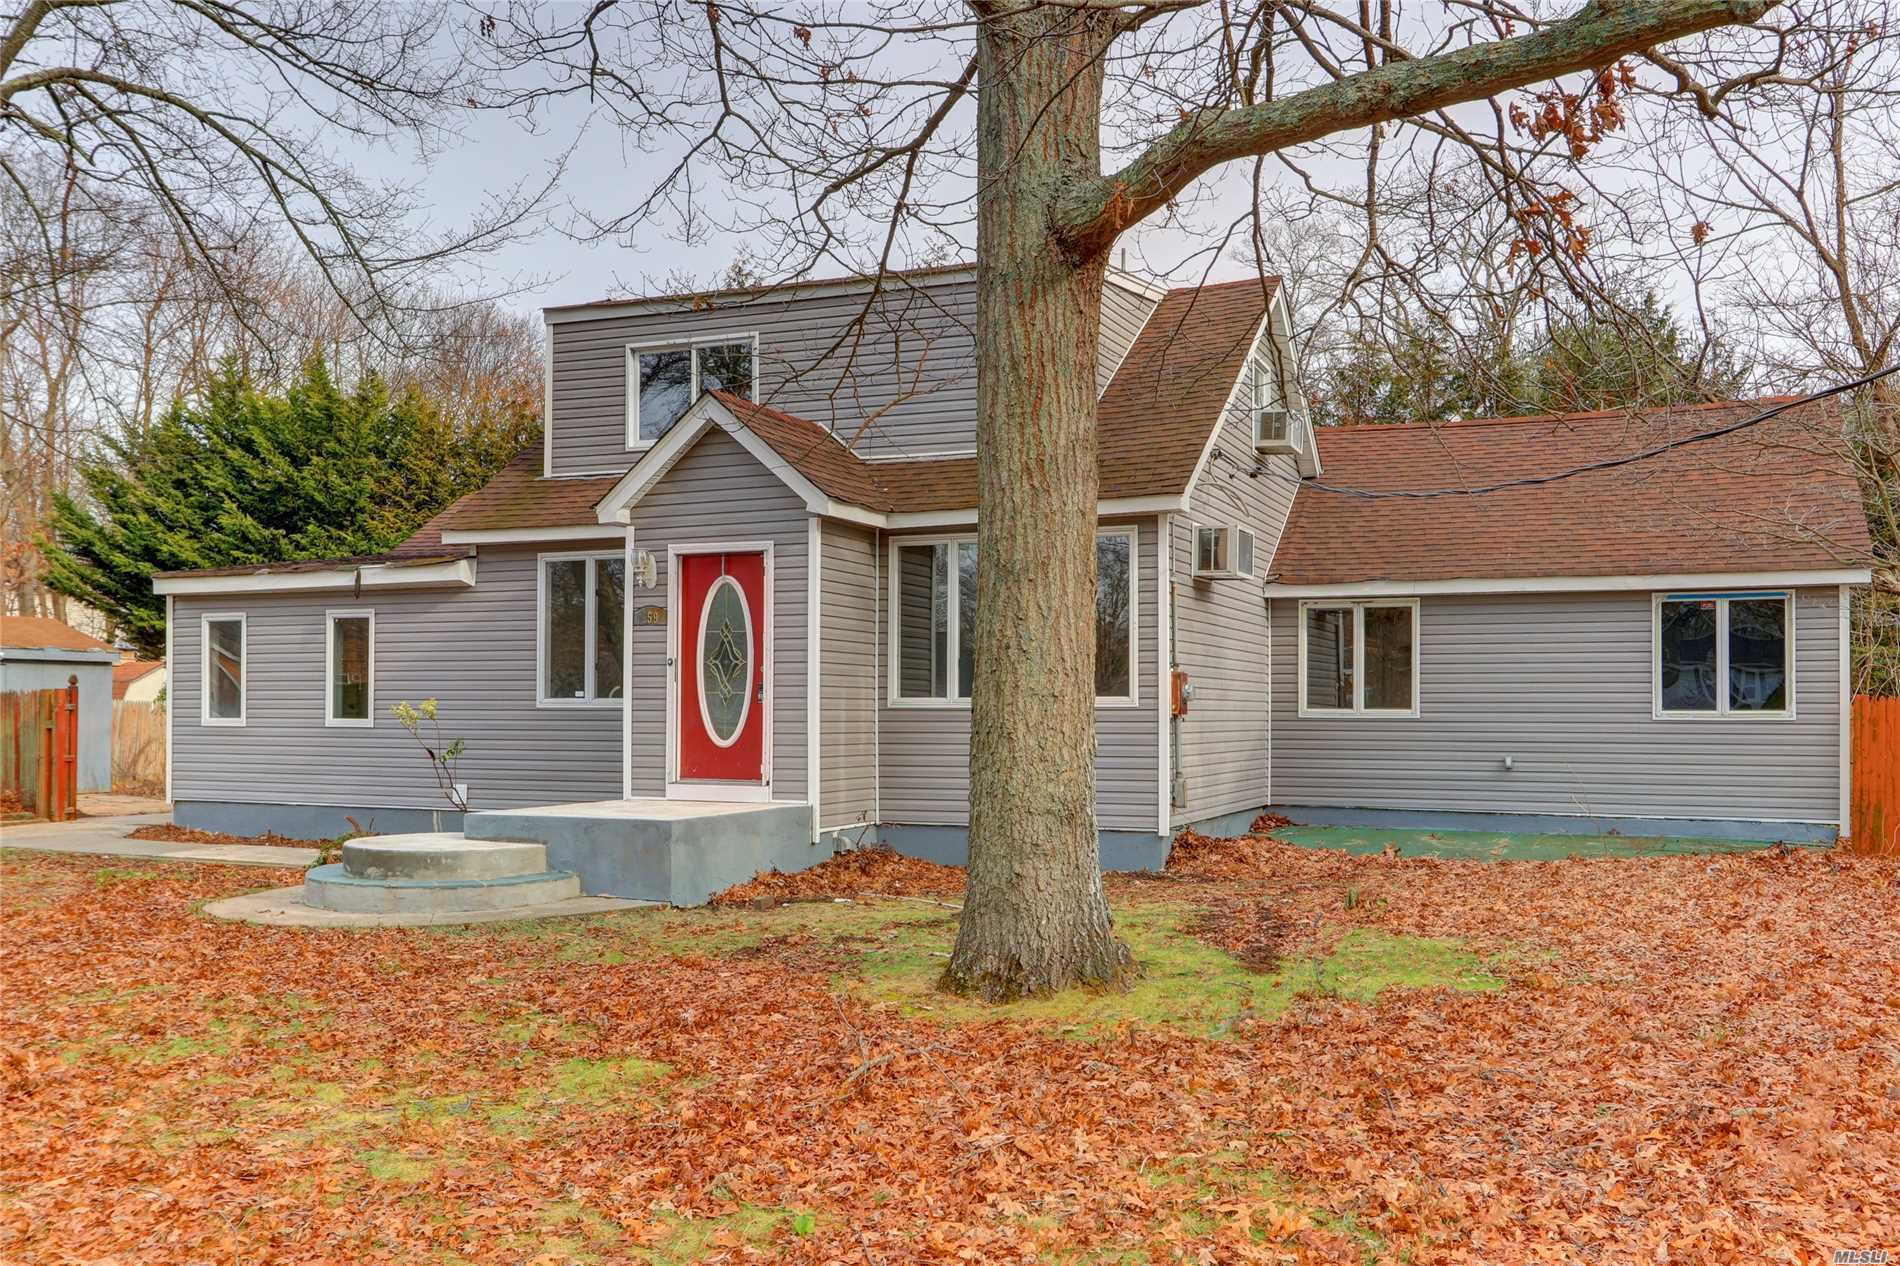 Great Starter Home Featuring A Large Master Bedroom With Sittling Are/Office On First Floor. 3 Additional Bedrooms Upstairs. 2 Full Baths. Formal Dining Rm, Eat In Kitchen, Fomal Living Rm, Breakfast Nook, Updated Floors,  New Vinyl Siding.